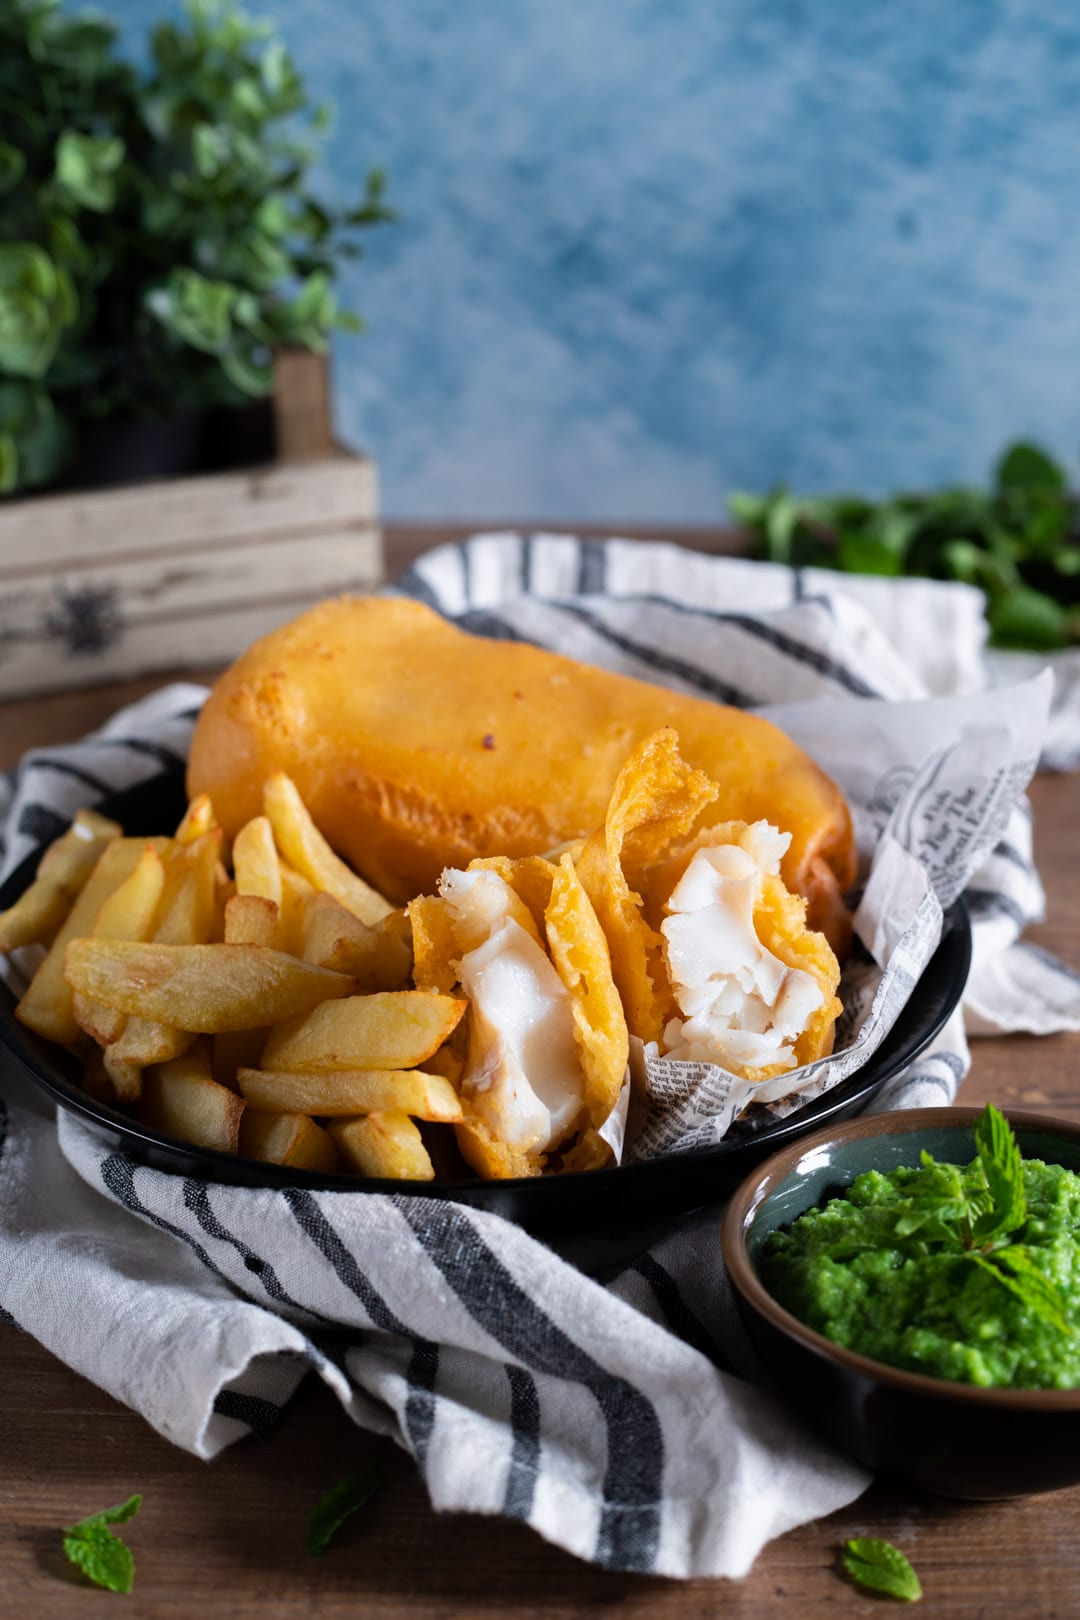 Fish and chips con mushy peas